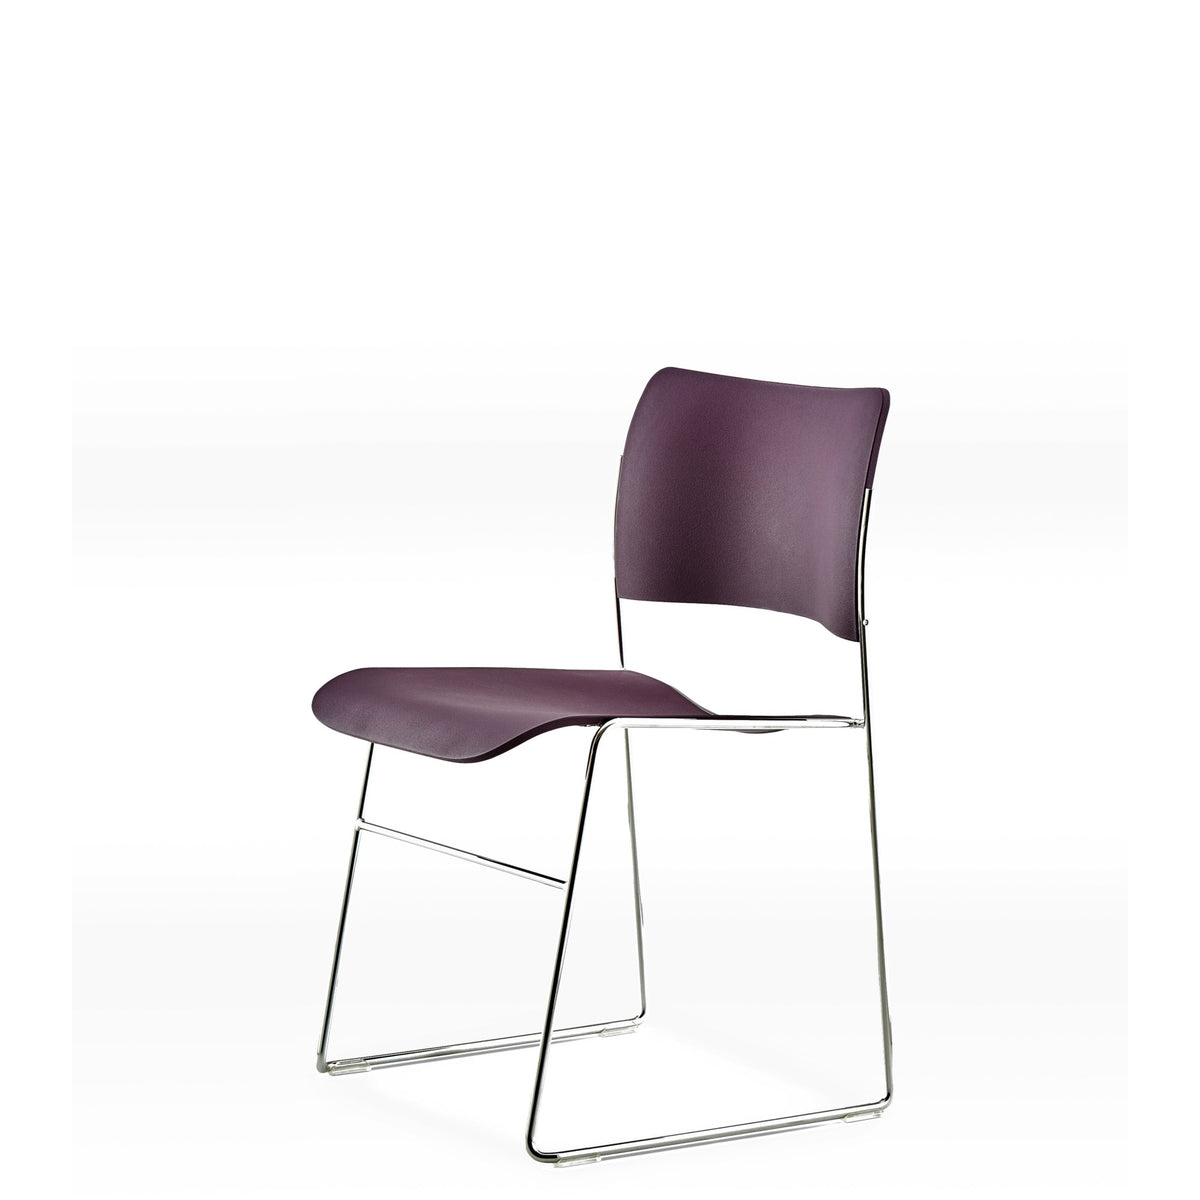 HOWE Plastic Resin Aubergine Chair with Chrome Base by David Rowland